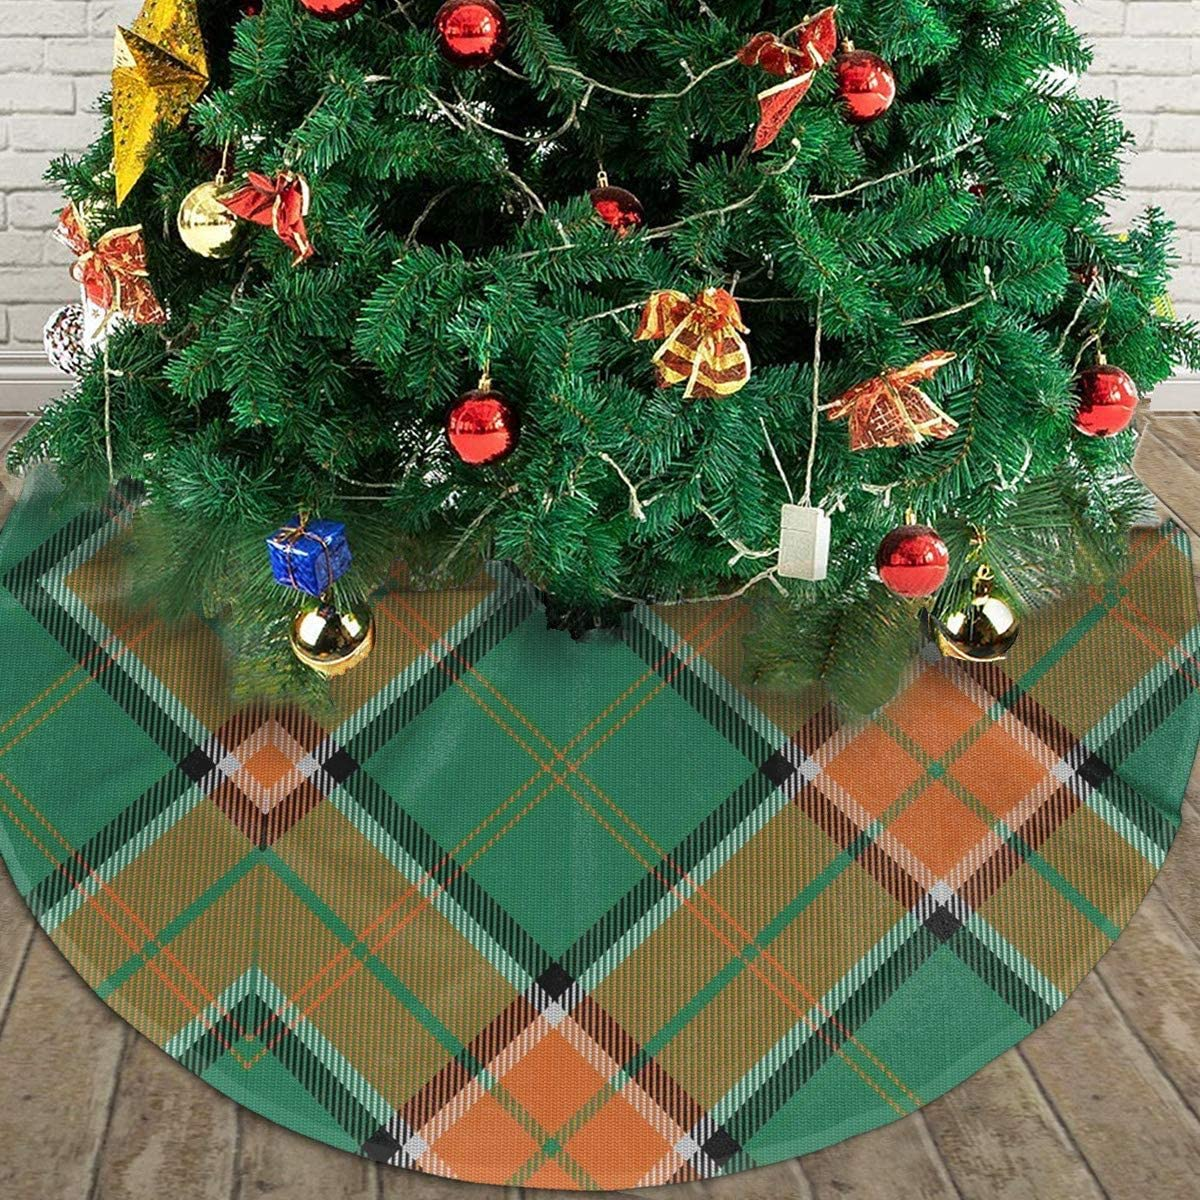 Scots Style Clan Pollock Tartan Plaid Themed Round Christmas Xmas Tree Skirt Carpet Mat Rugs Pad Party Favors Supplies Home Ornament Decoration 30 36 48 Inch Small Big Giant Large